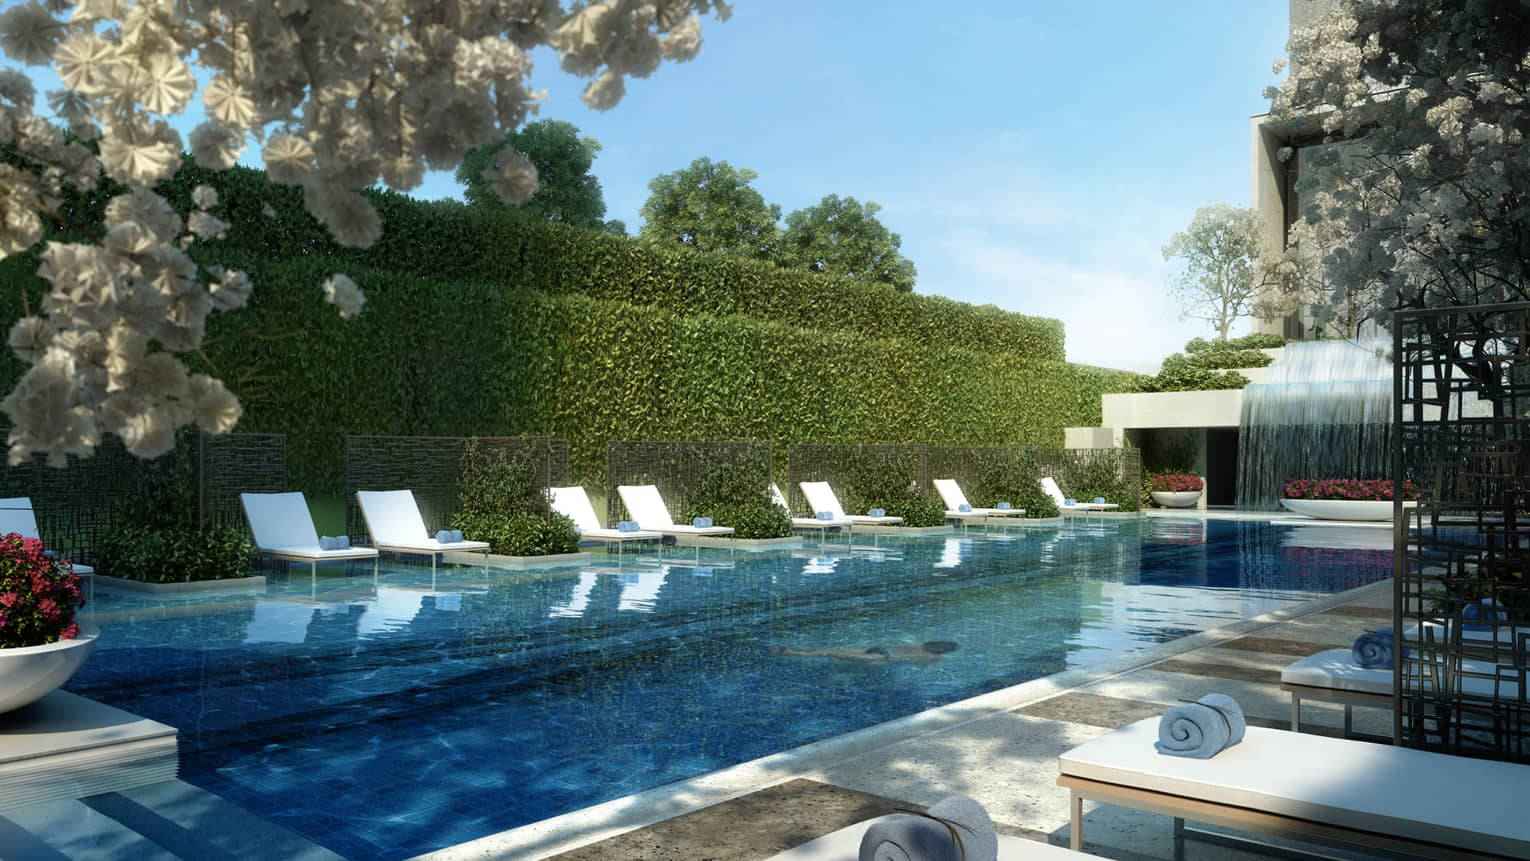 Wall of shrubs, white lounge chairs around outdoor swimming pool